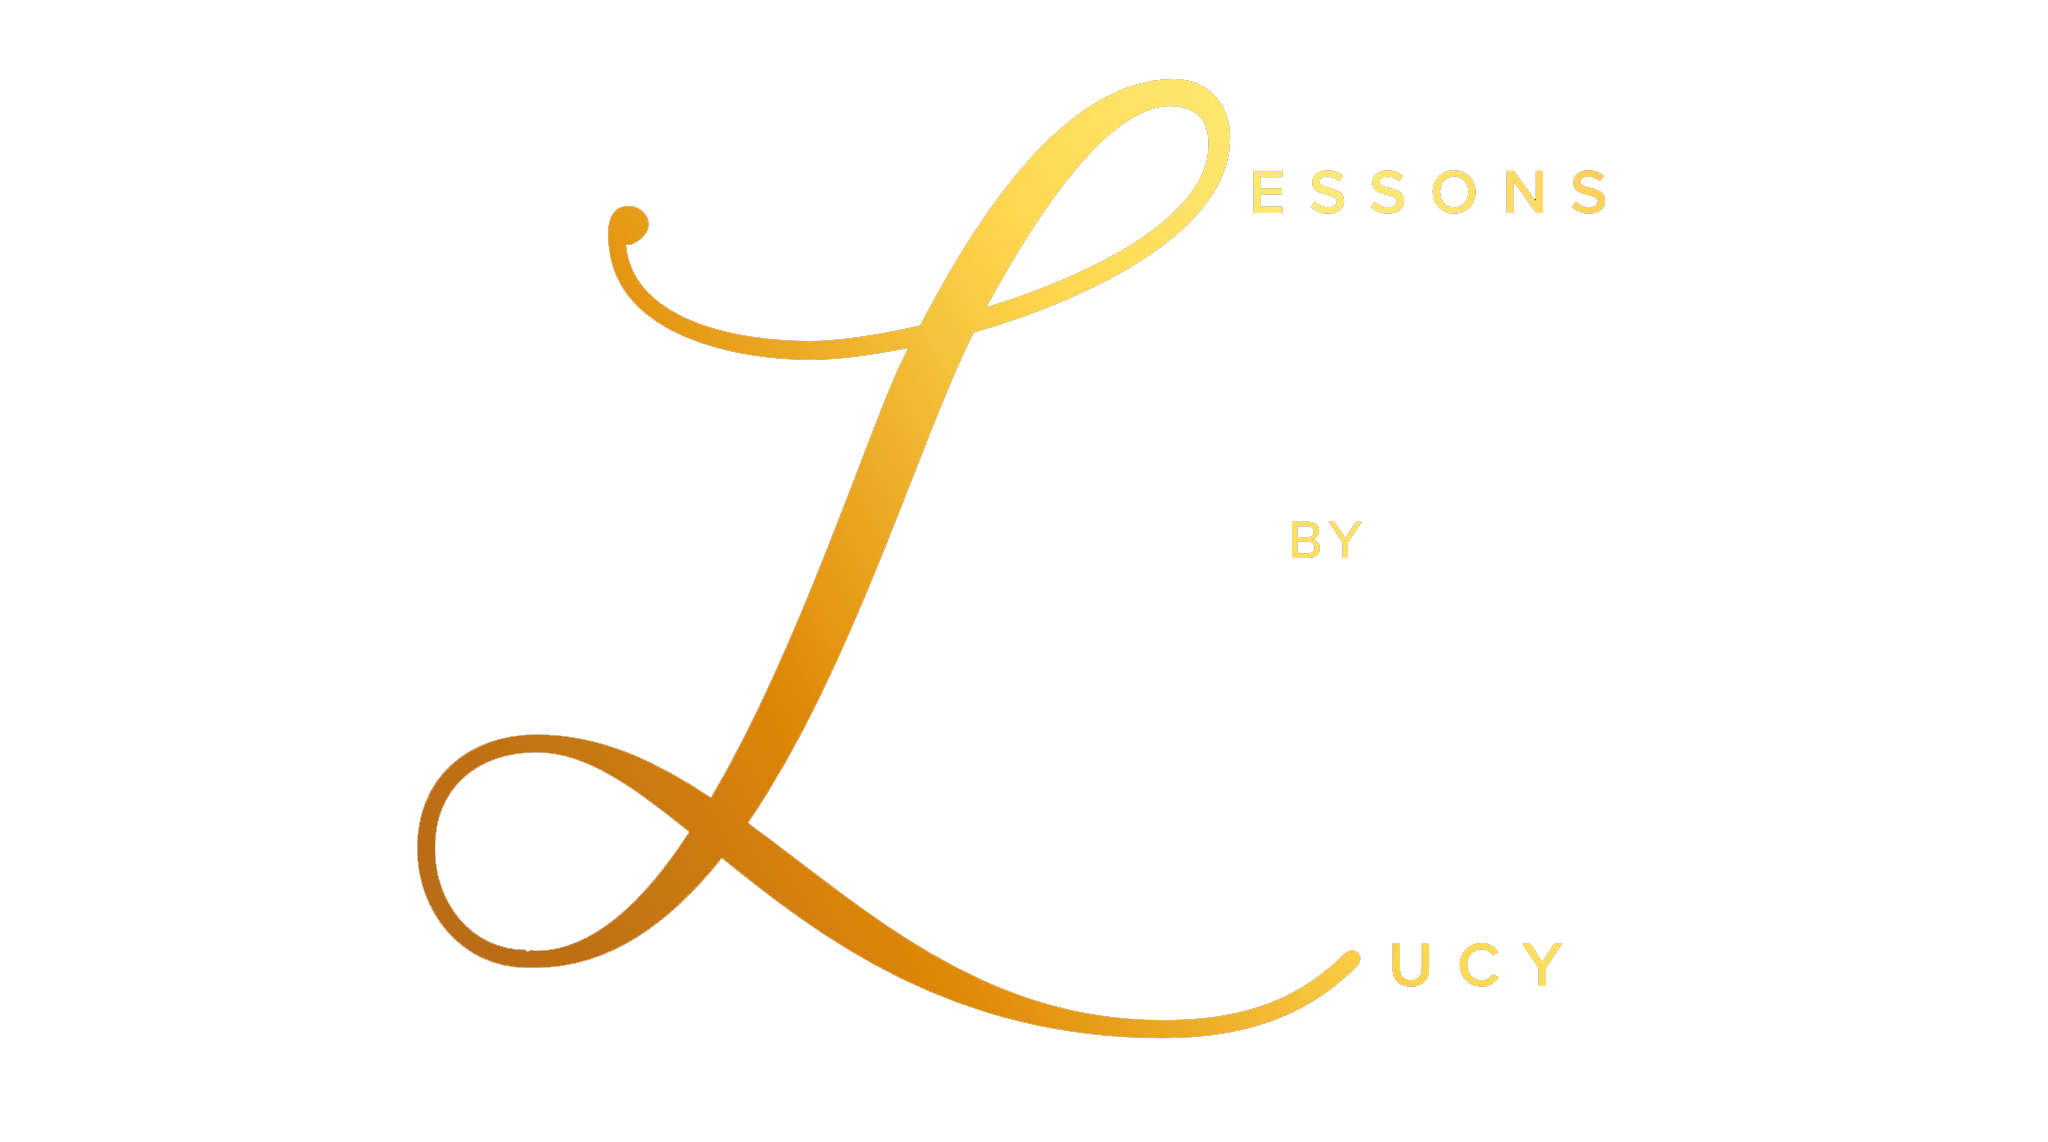 Lessons By Lucy